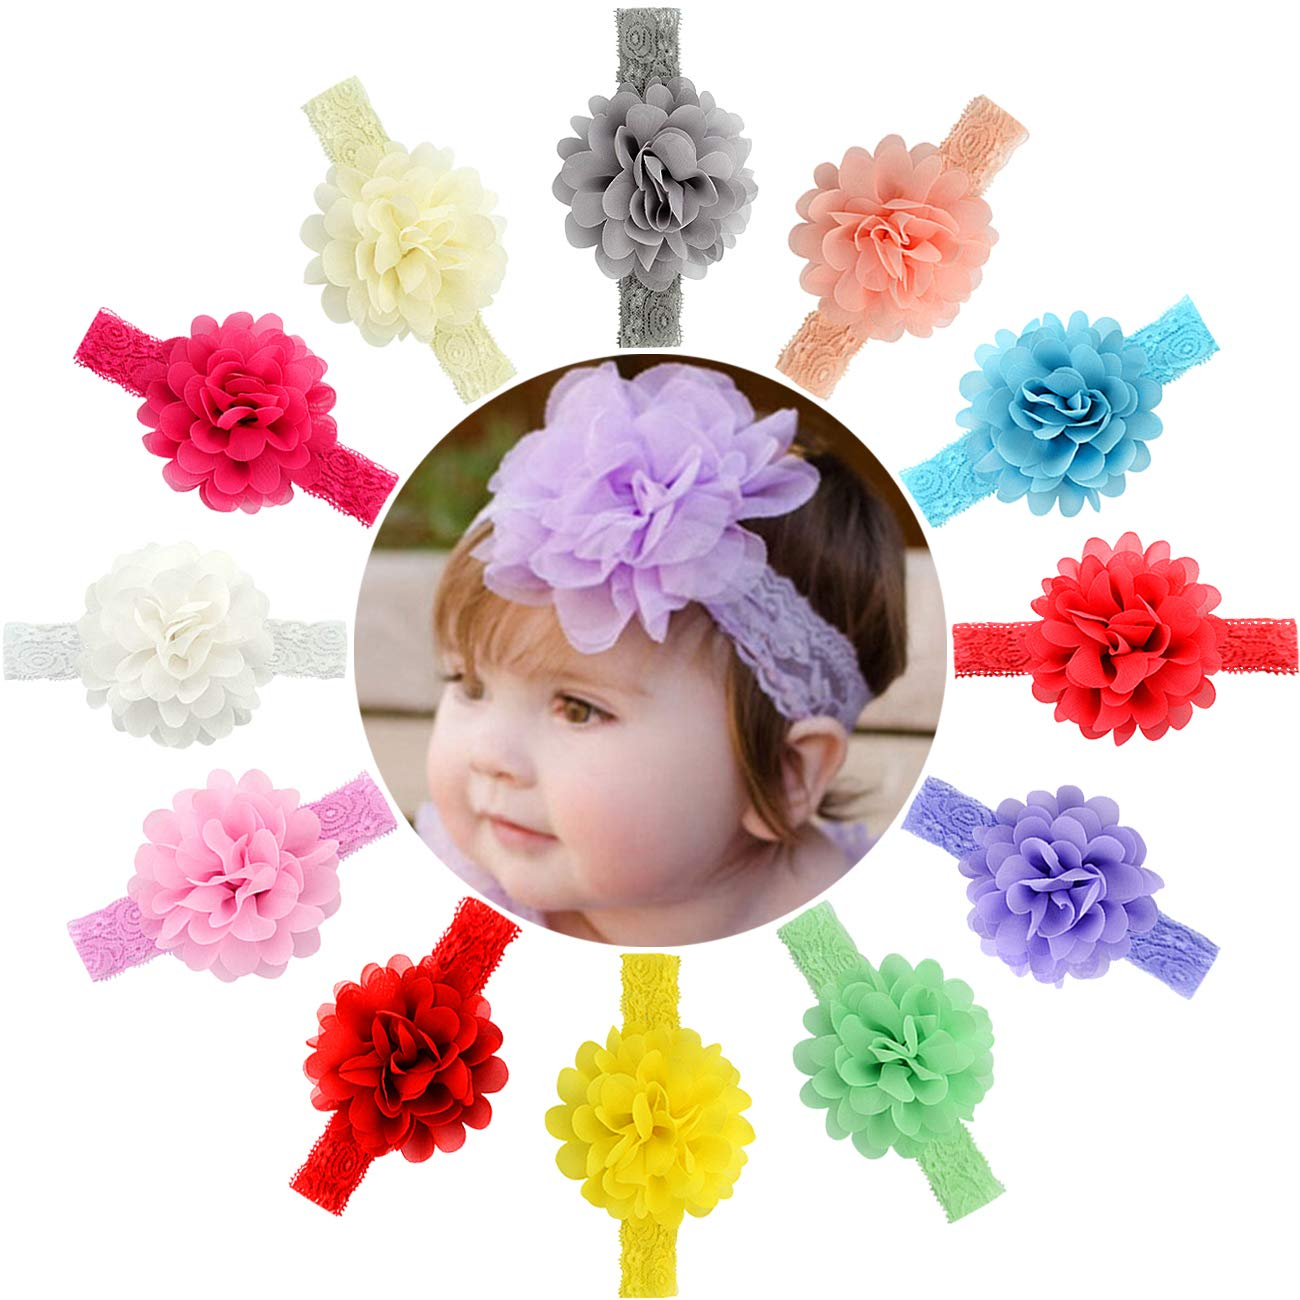 Hair Accessories Baby Accessories Generous Newborn Baby Girl Headbands